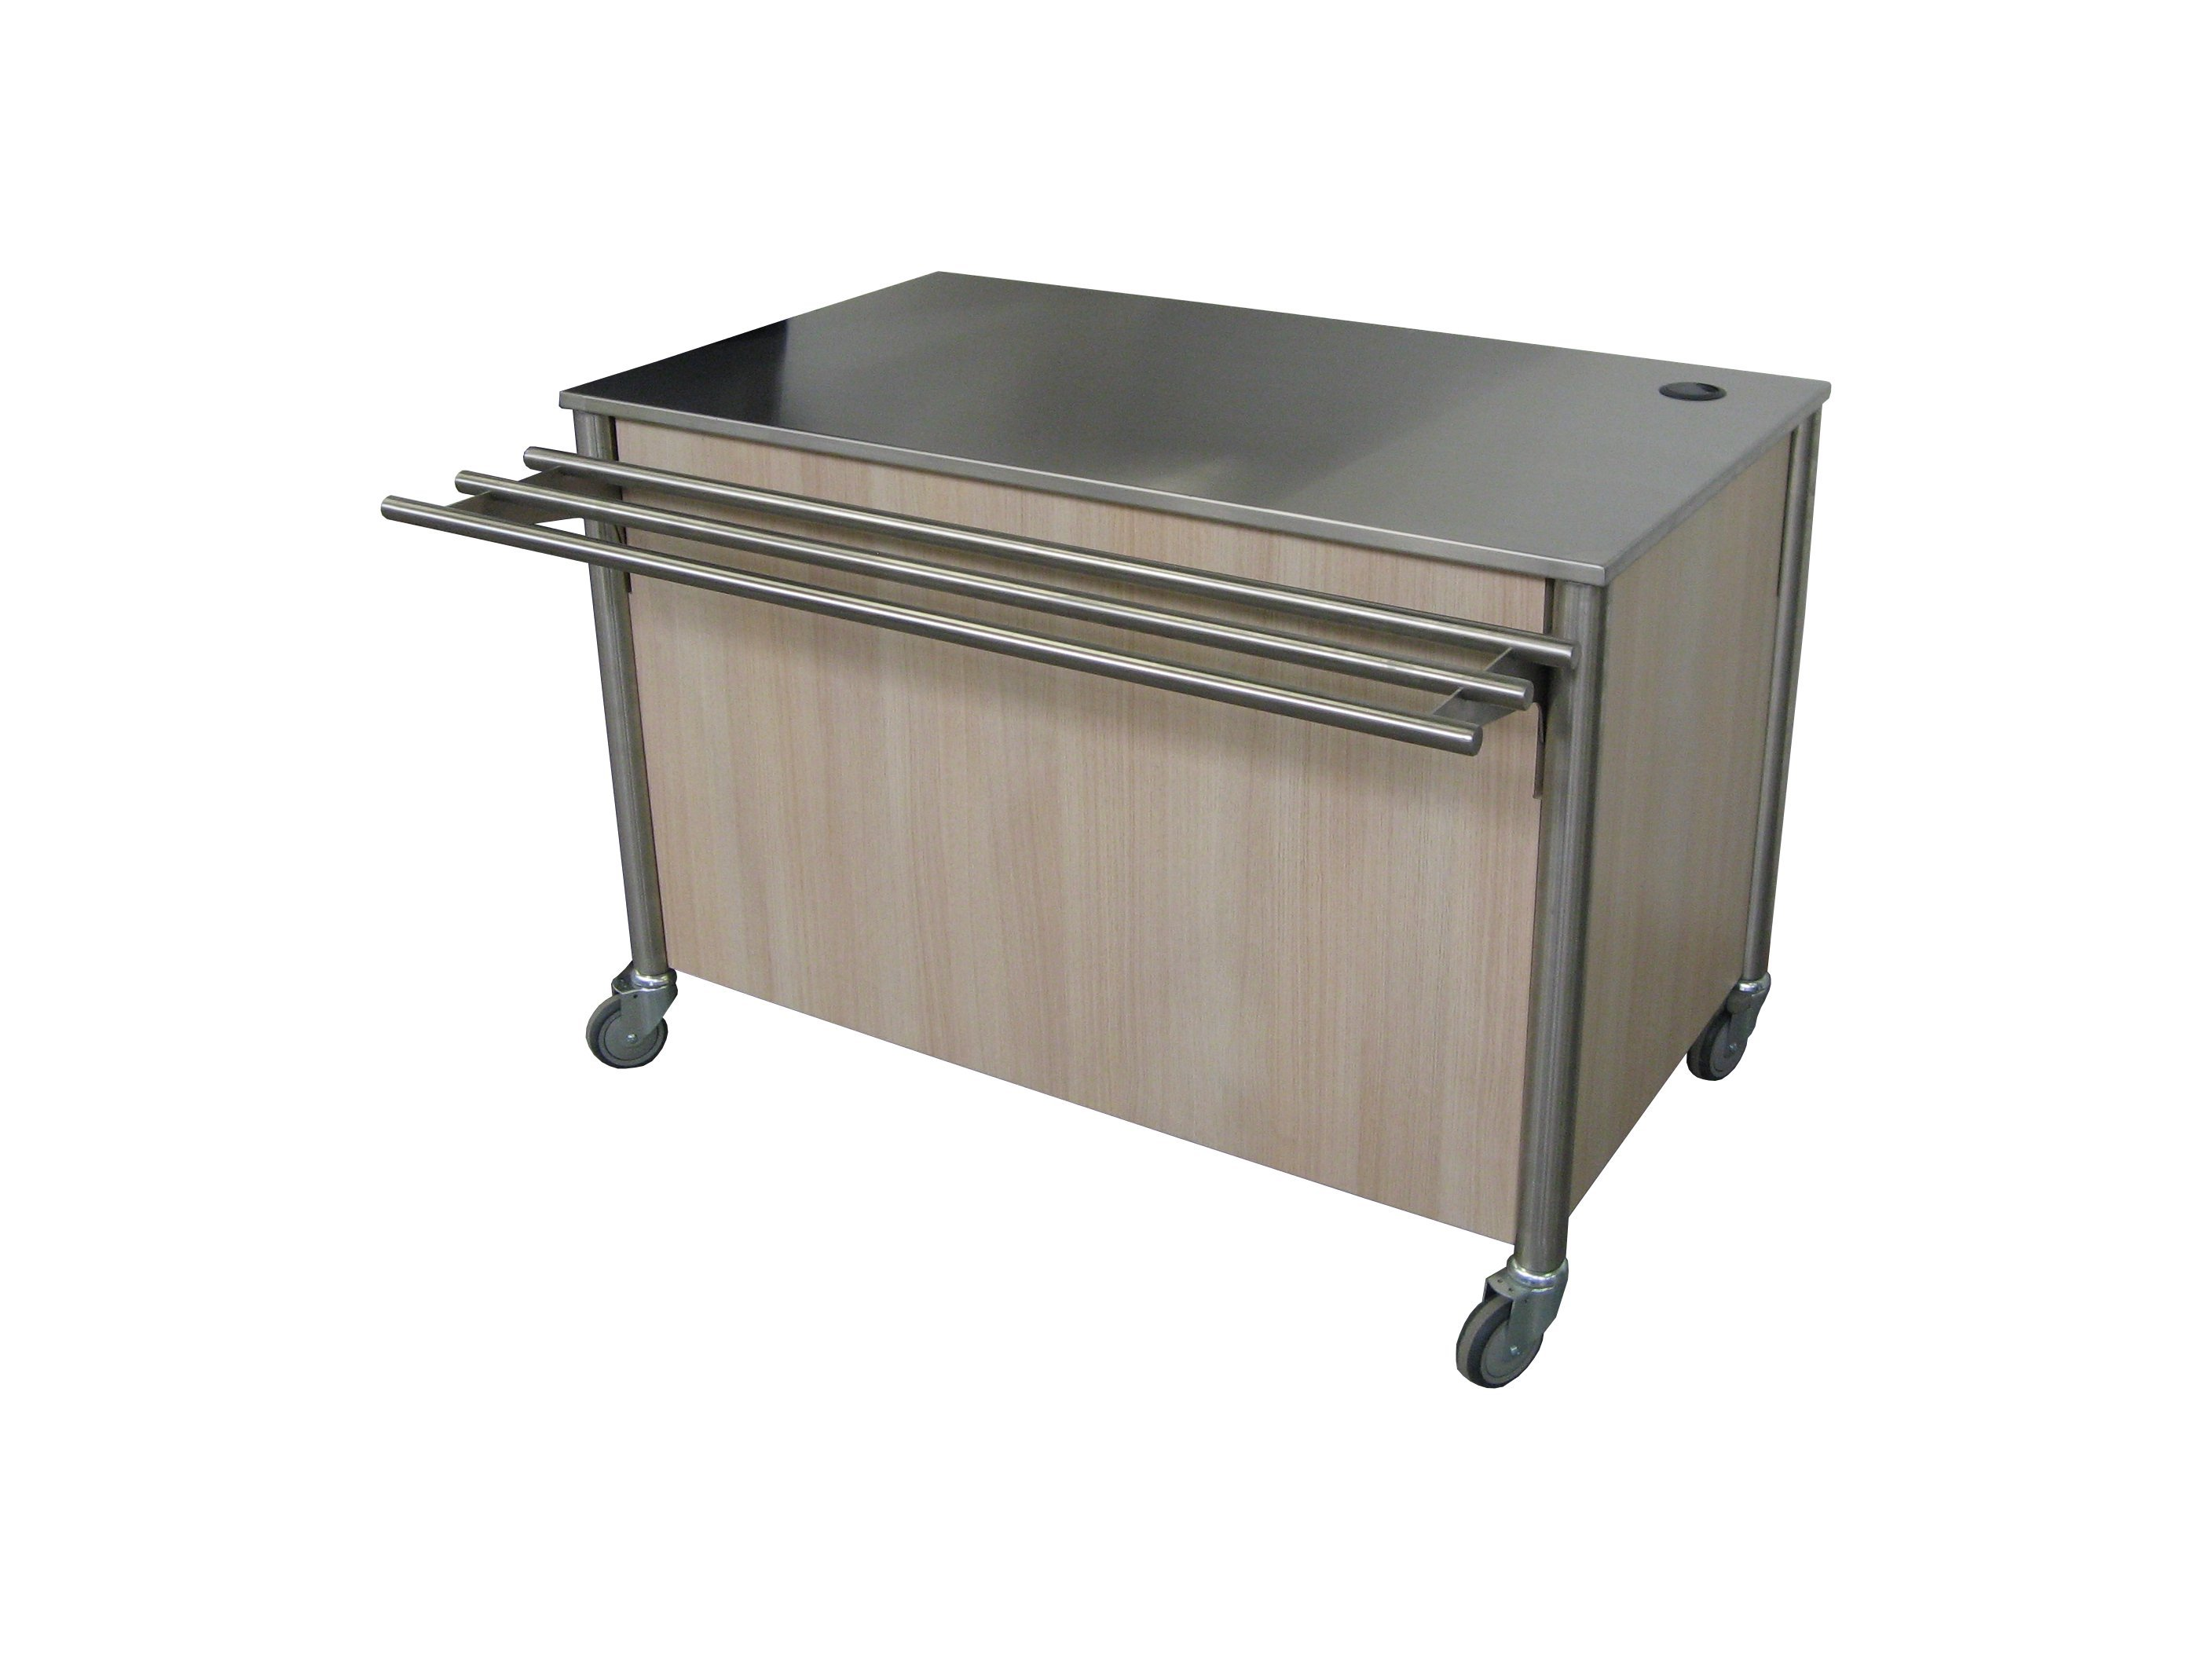 Buffet part standard without trayrail 1200x700x900